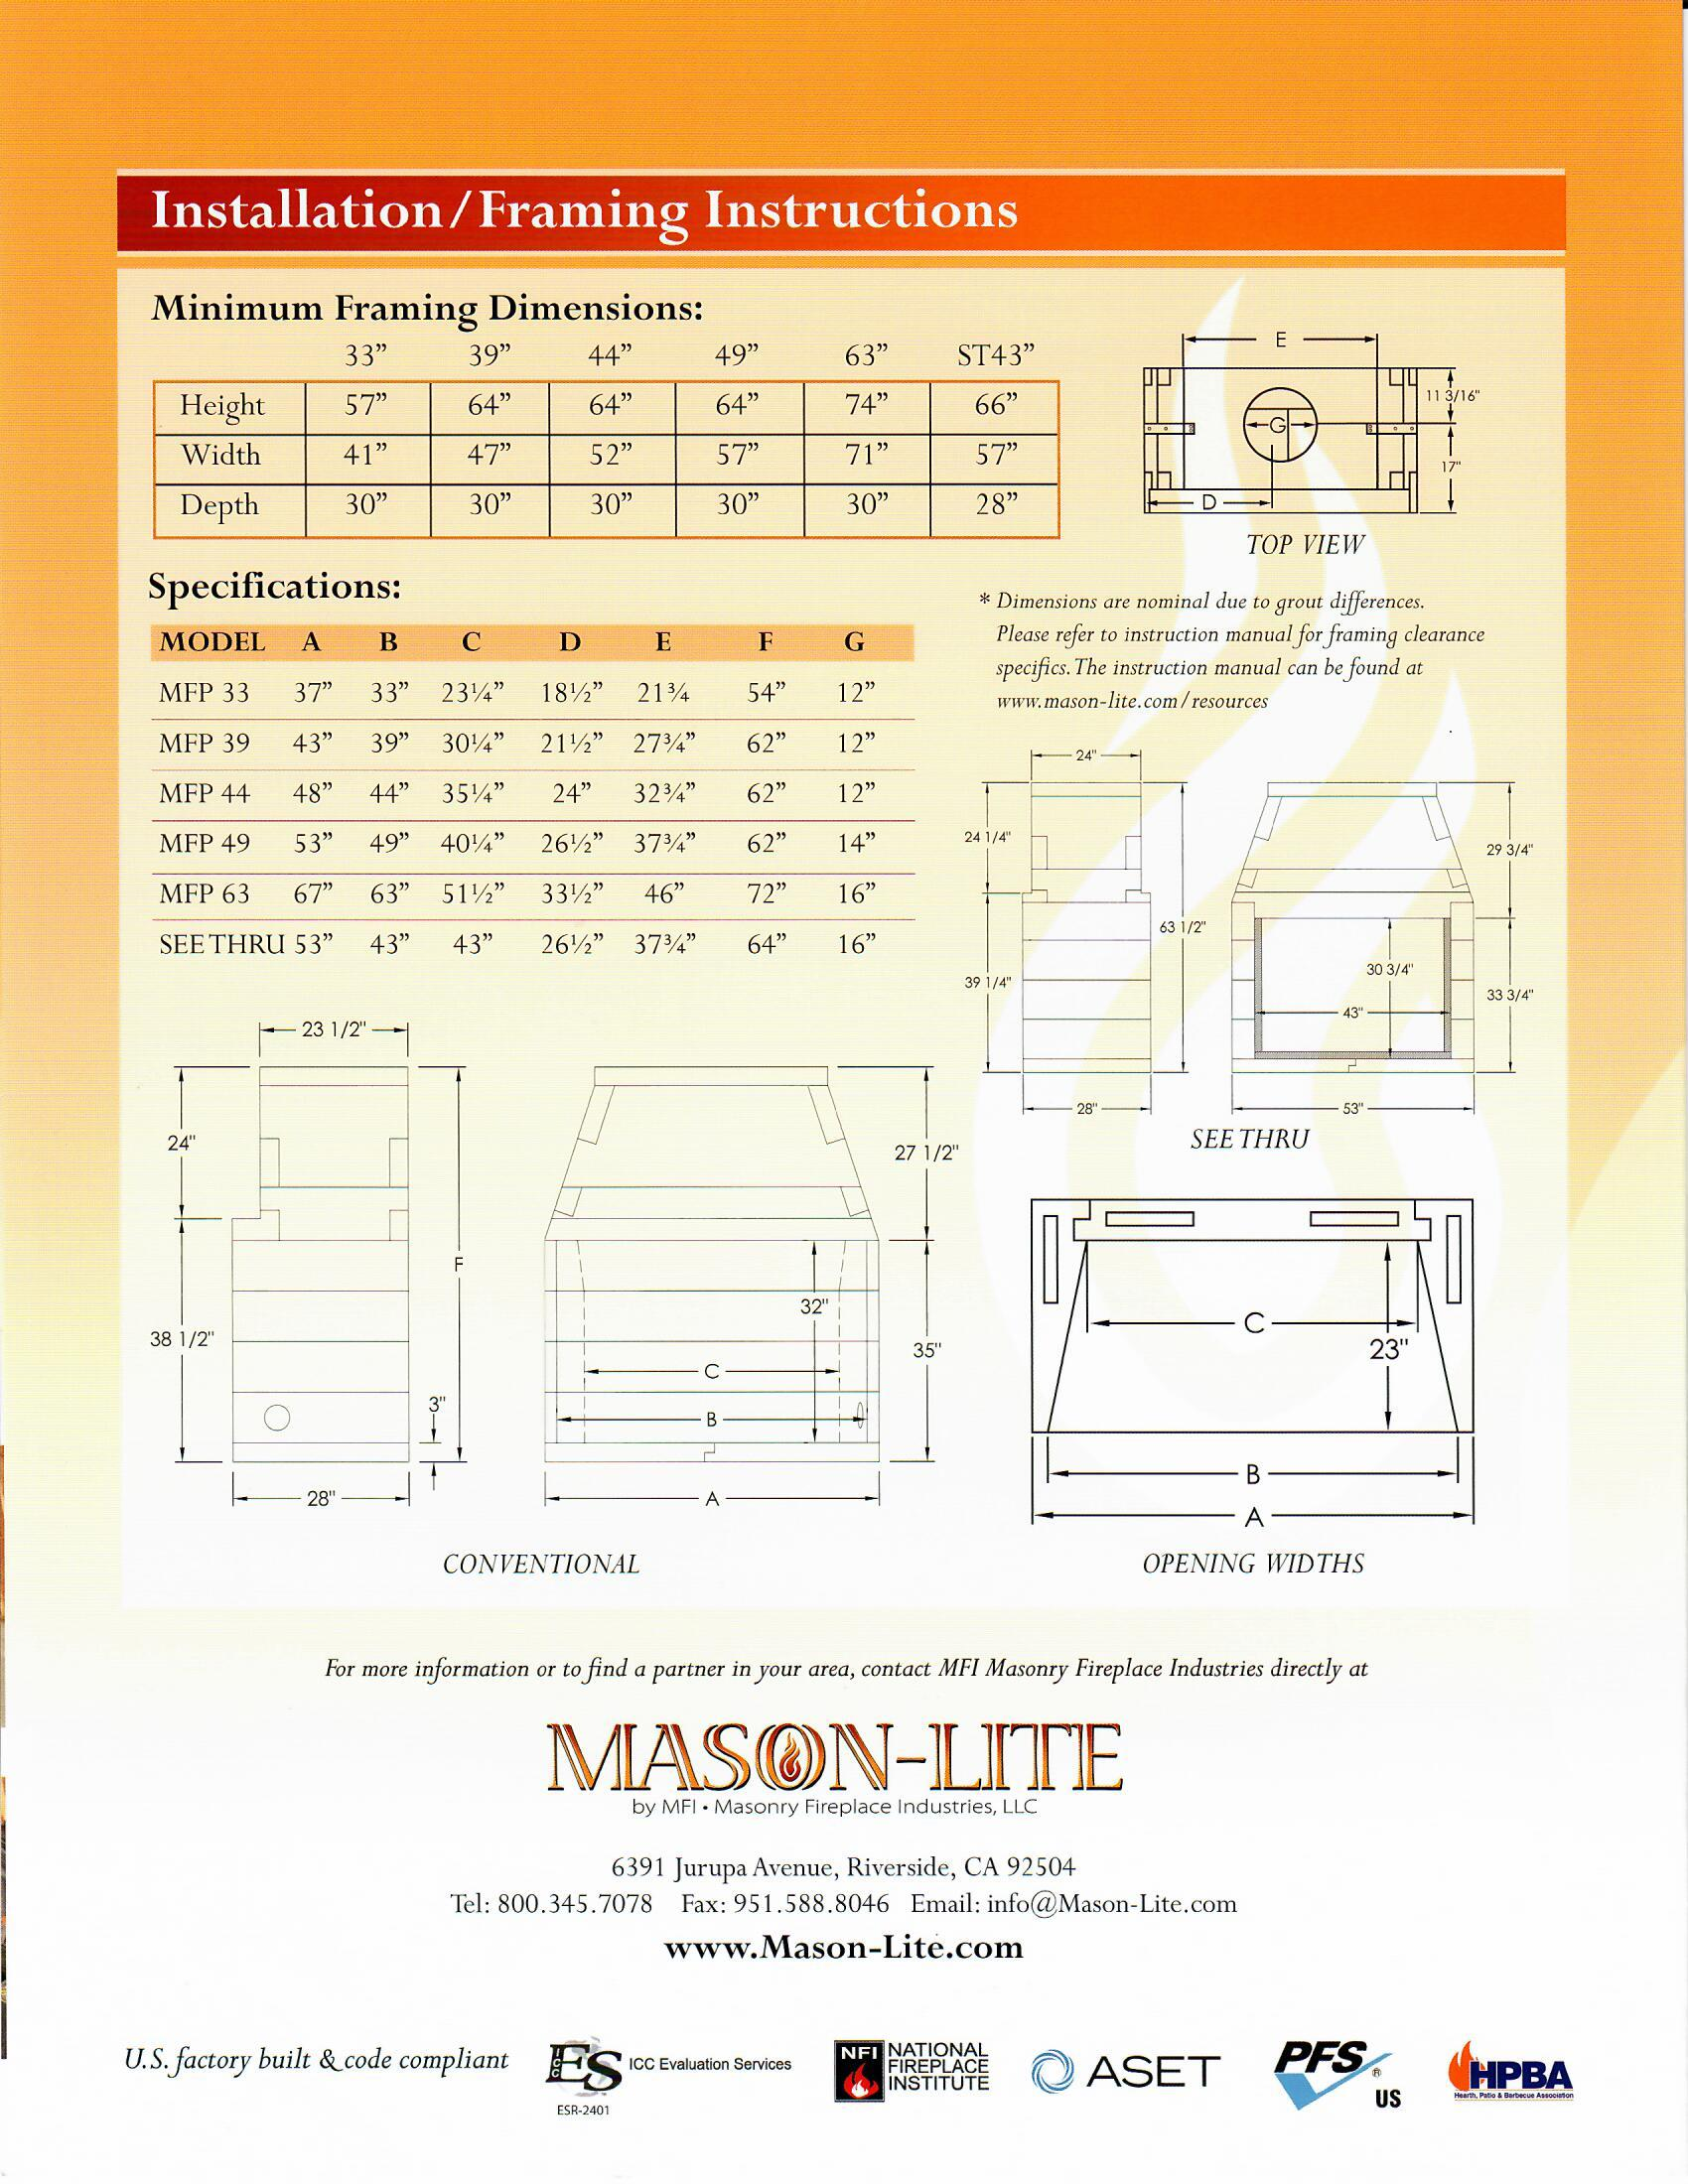 Mason-Lite Information Sheet